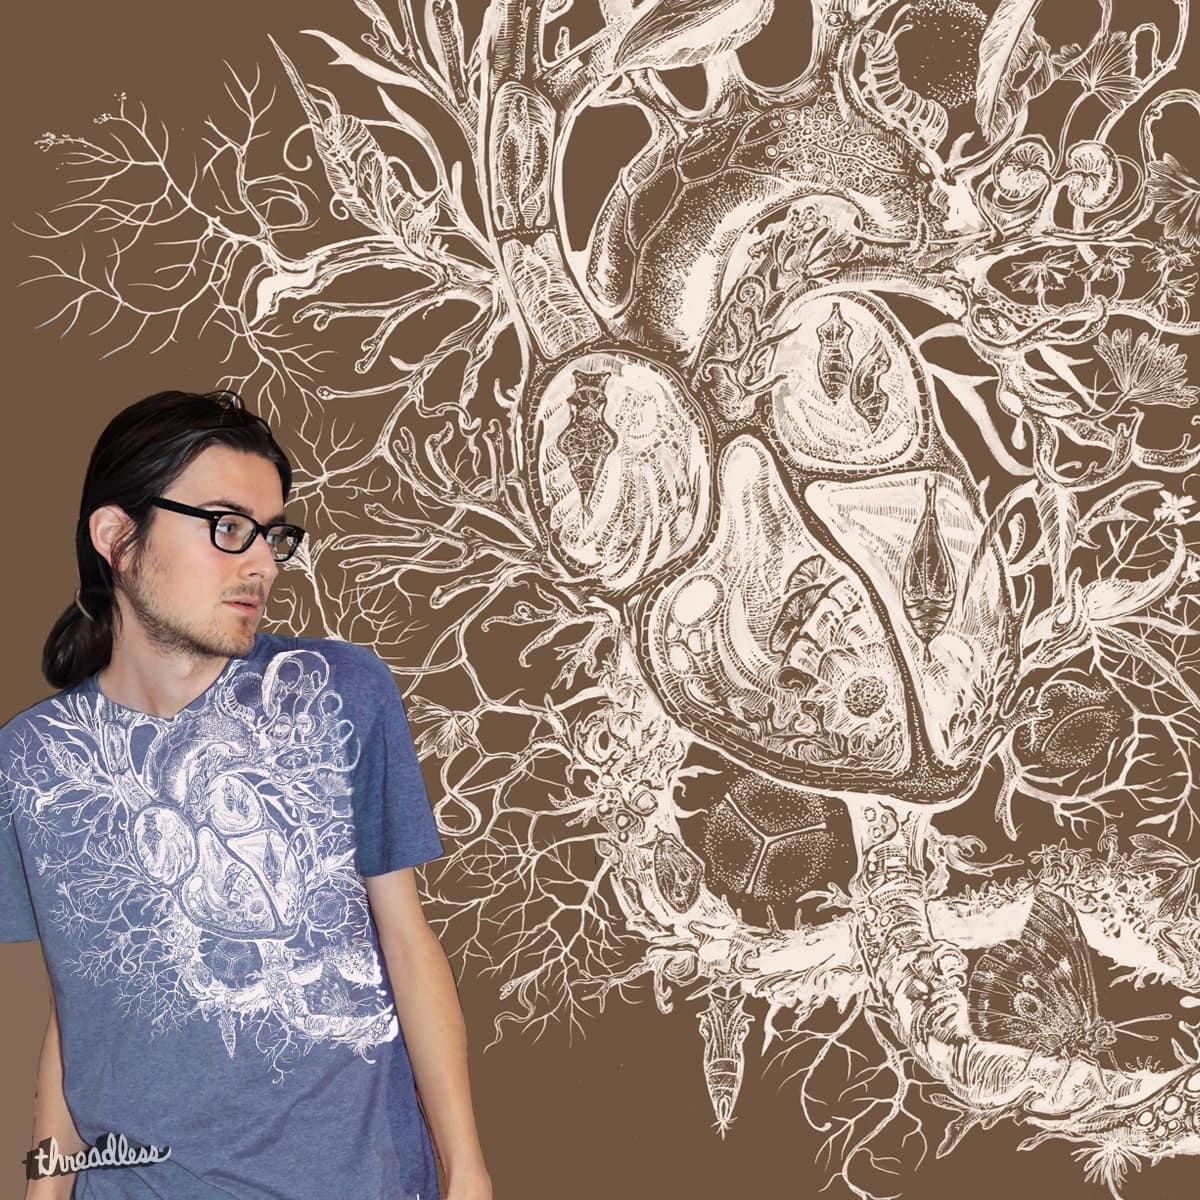 Metamorph by JonHabens on Threadless